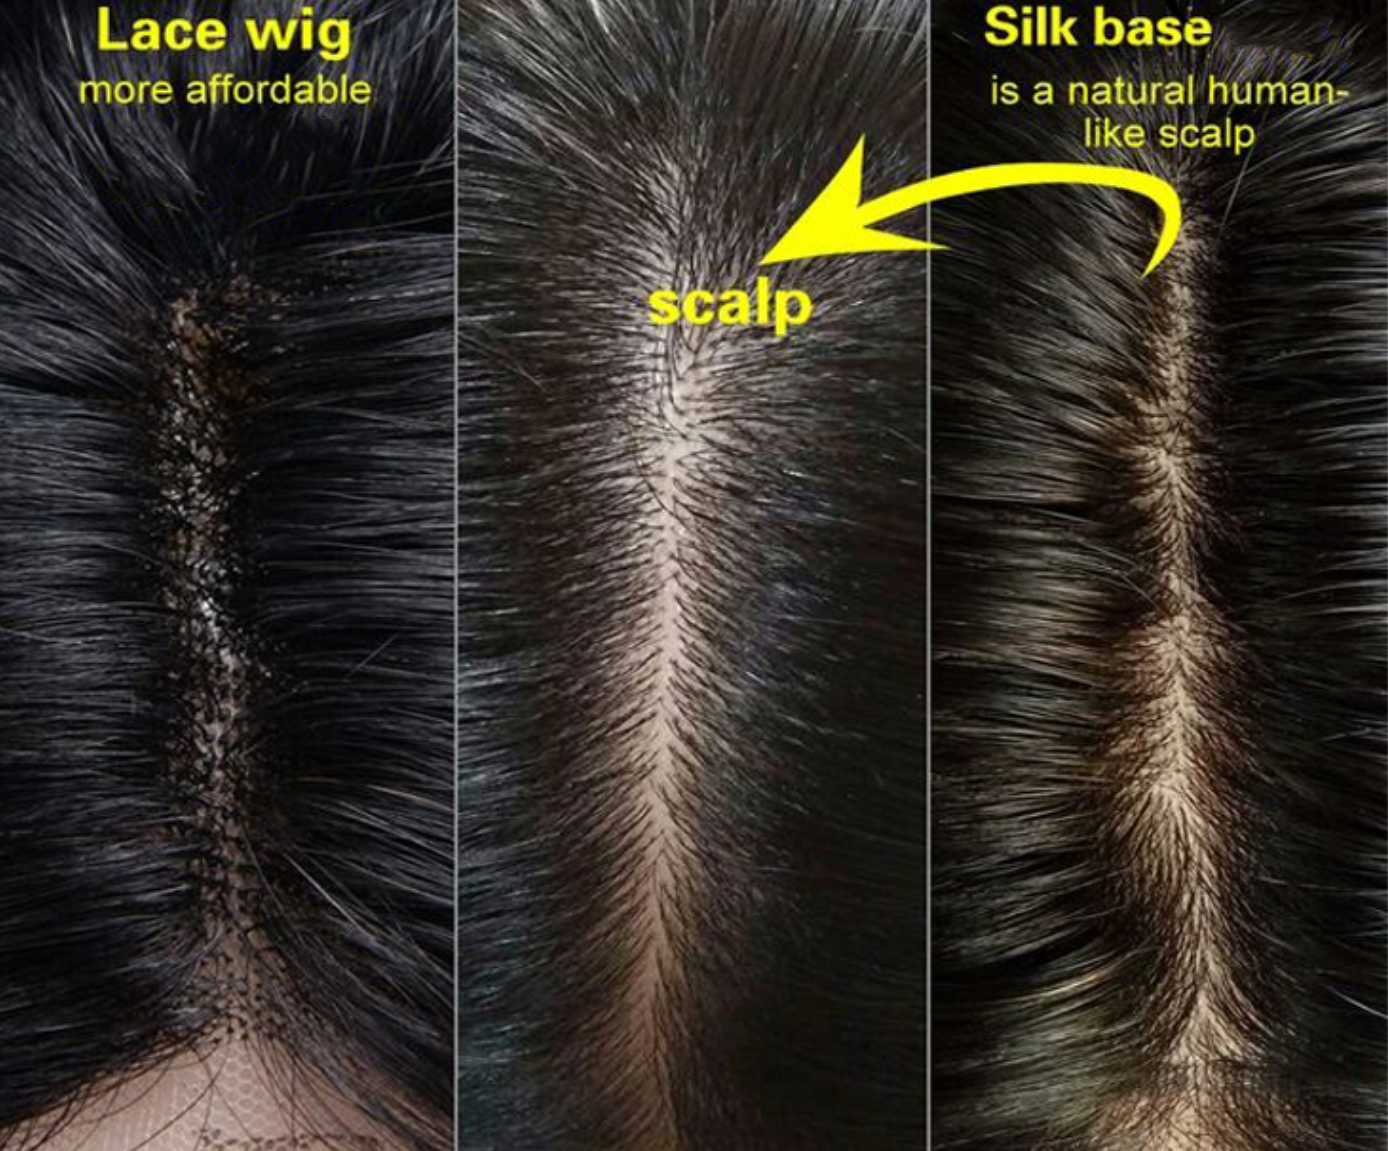 Difference Between a Silk Base and Lace Wig